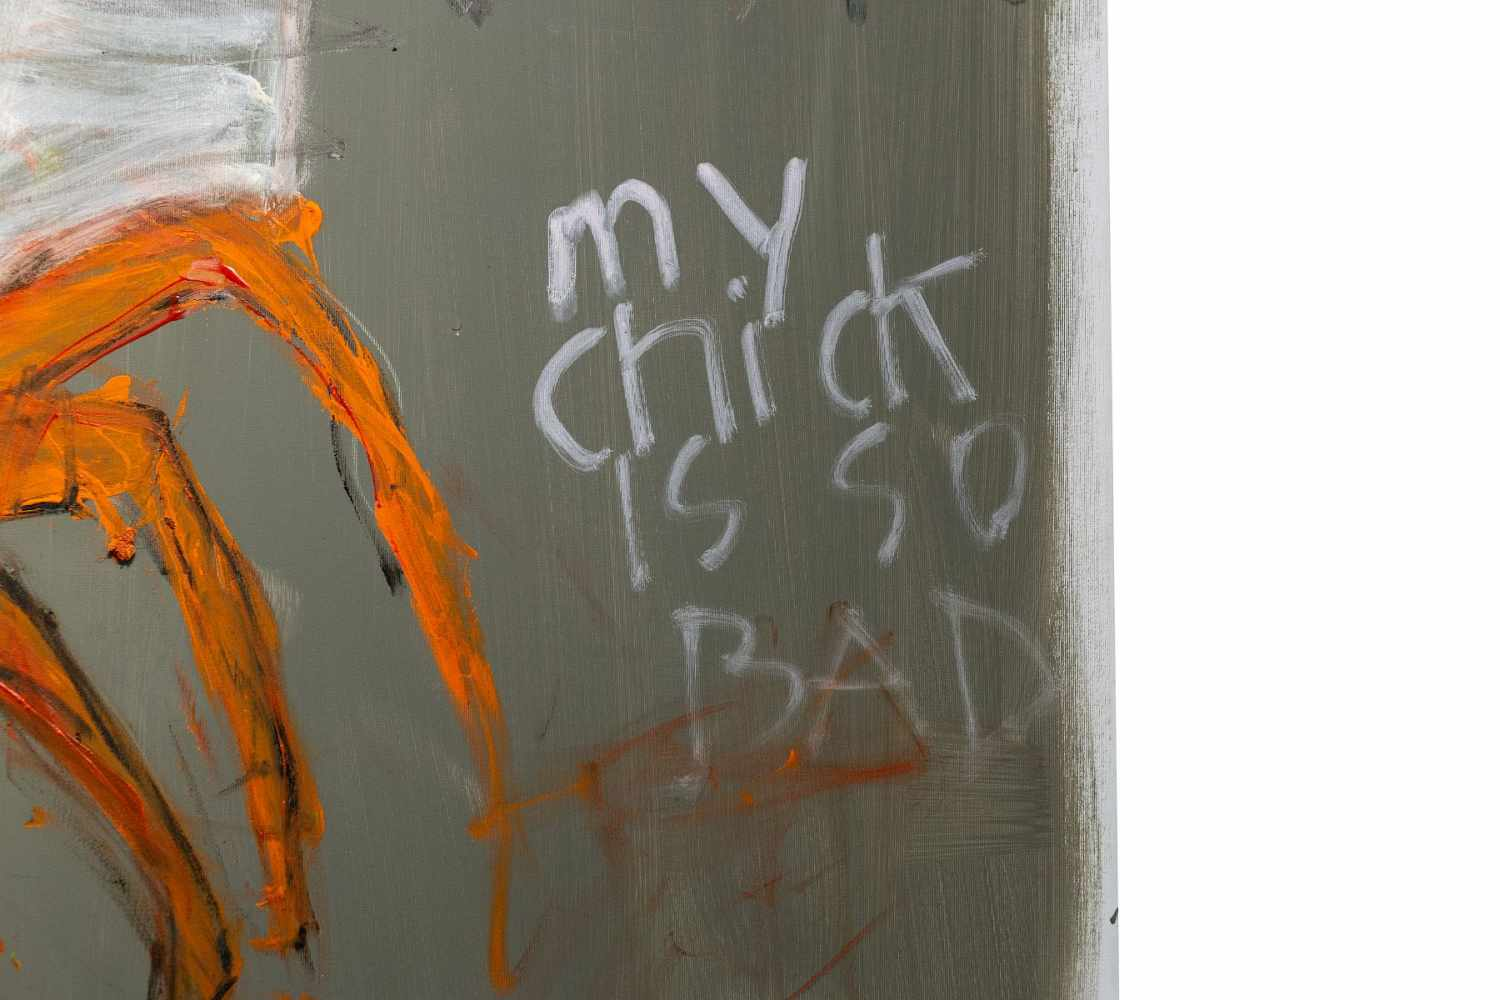 """Peter Kohl, """"my chick IS SO BATH"""", * - Image 3 of 3"""